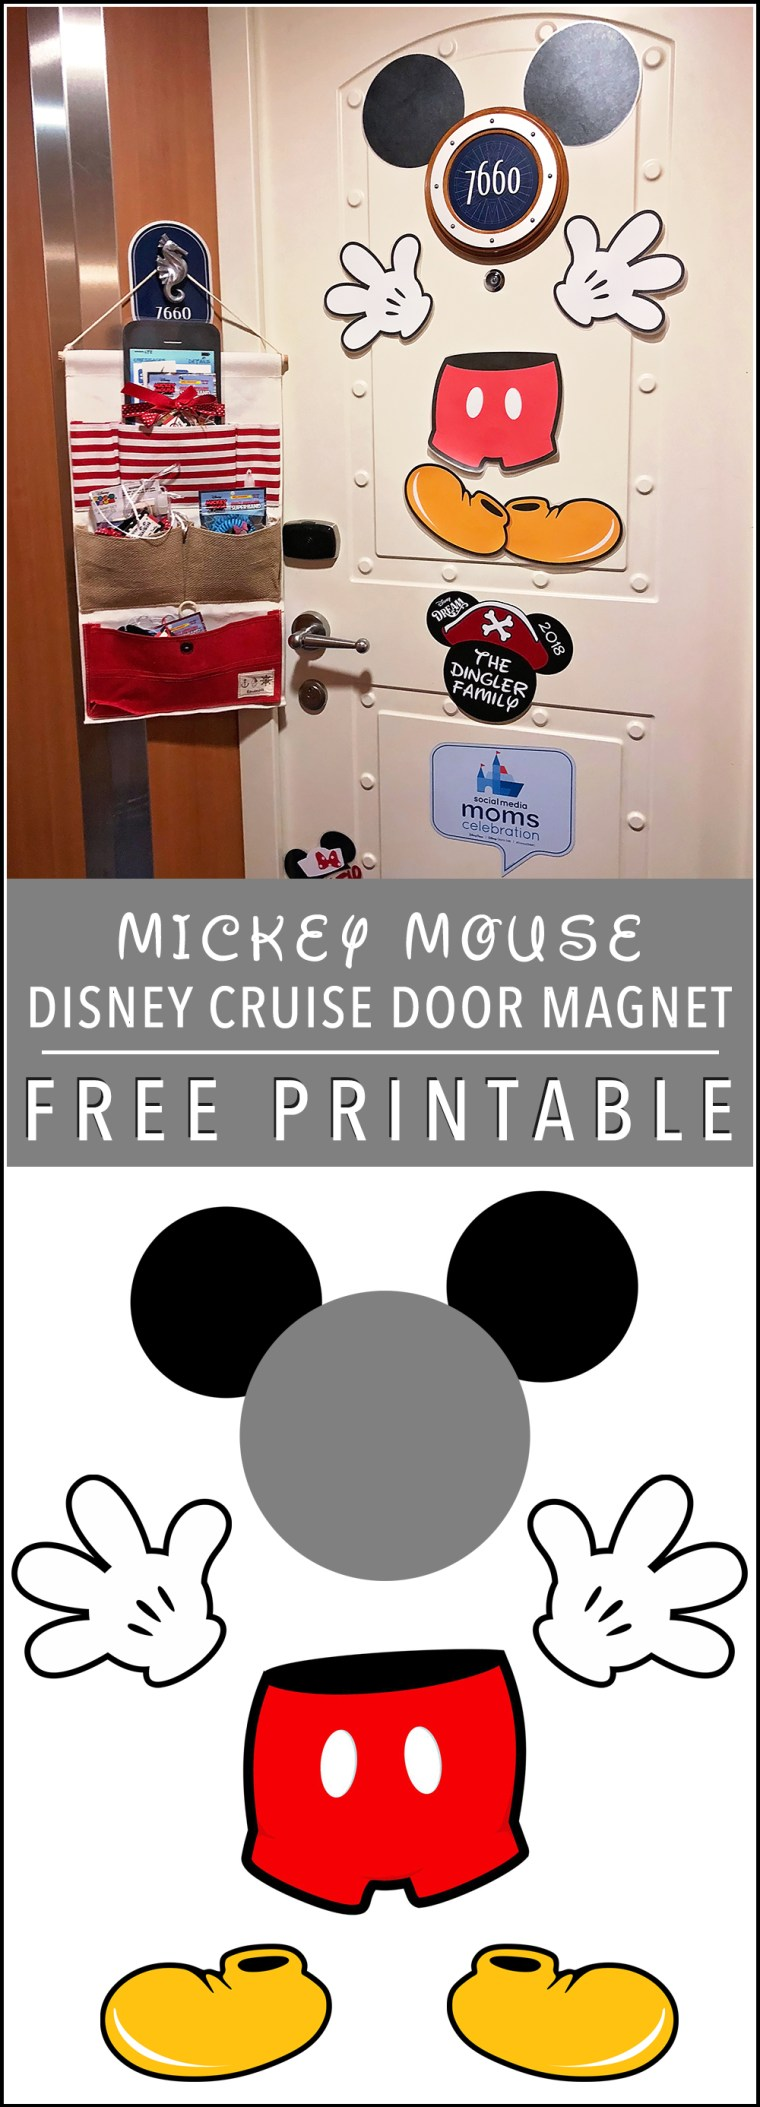 Disney Dream Cruise Mickey Mouse Door Magnet Free Printable